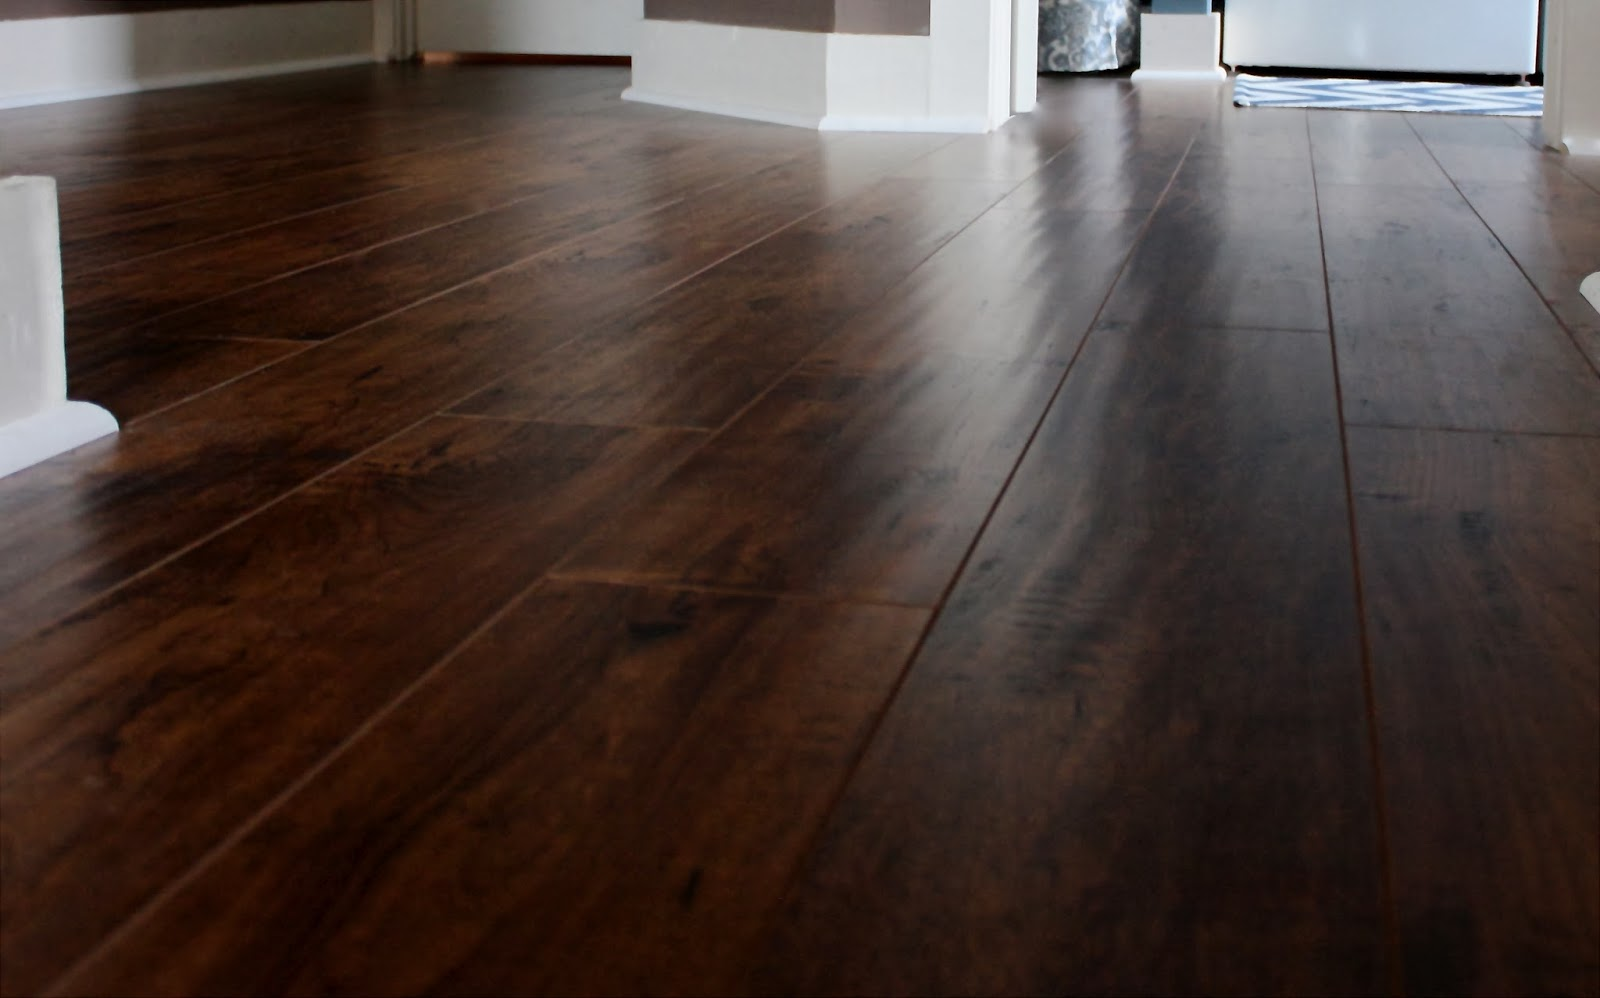 Pergo High Gloss Laminate Flooring Hd Photo